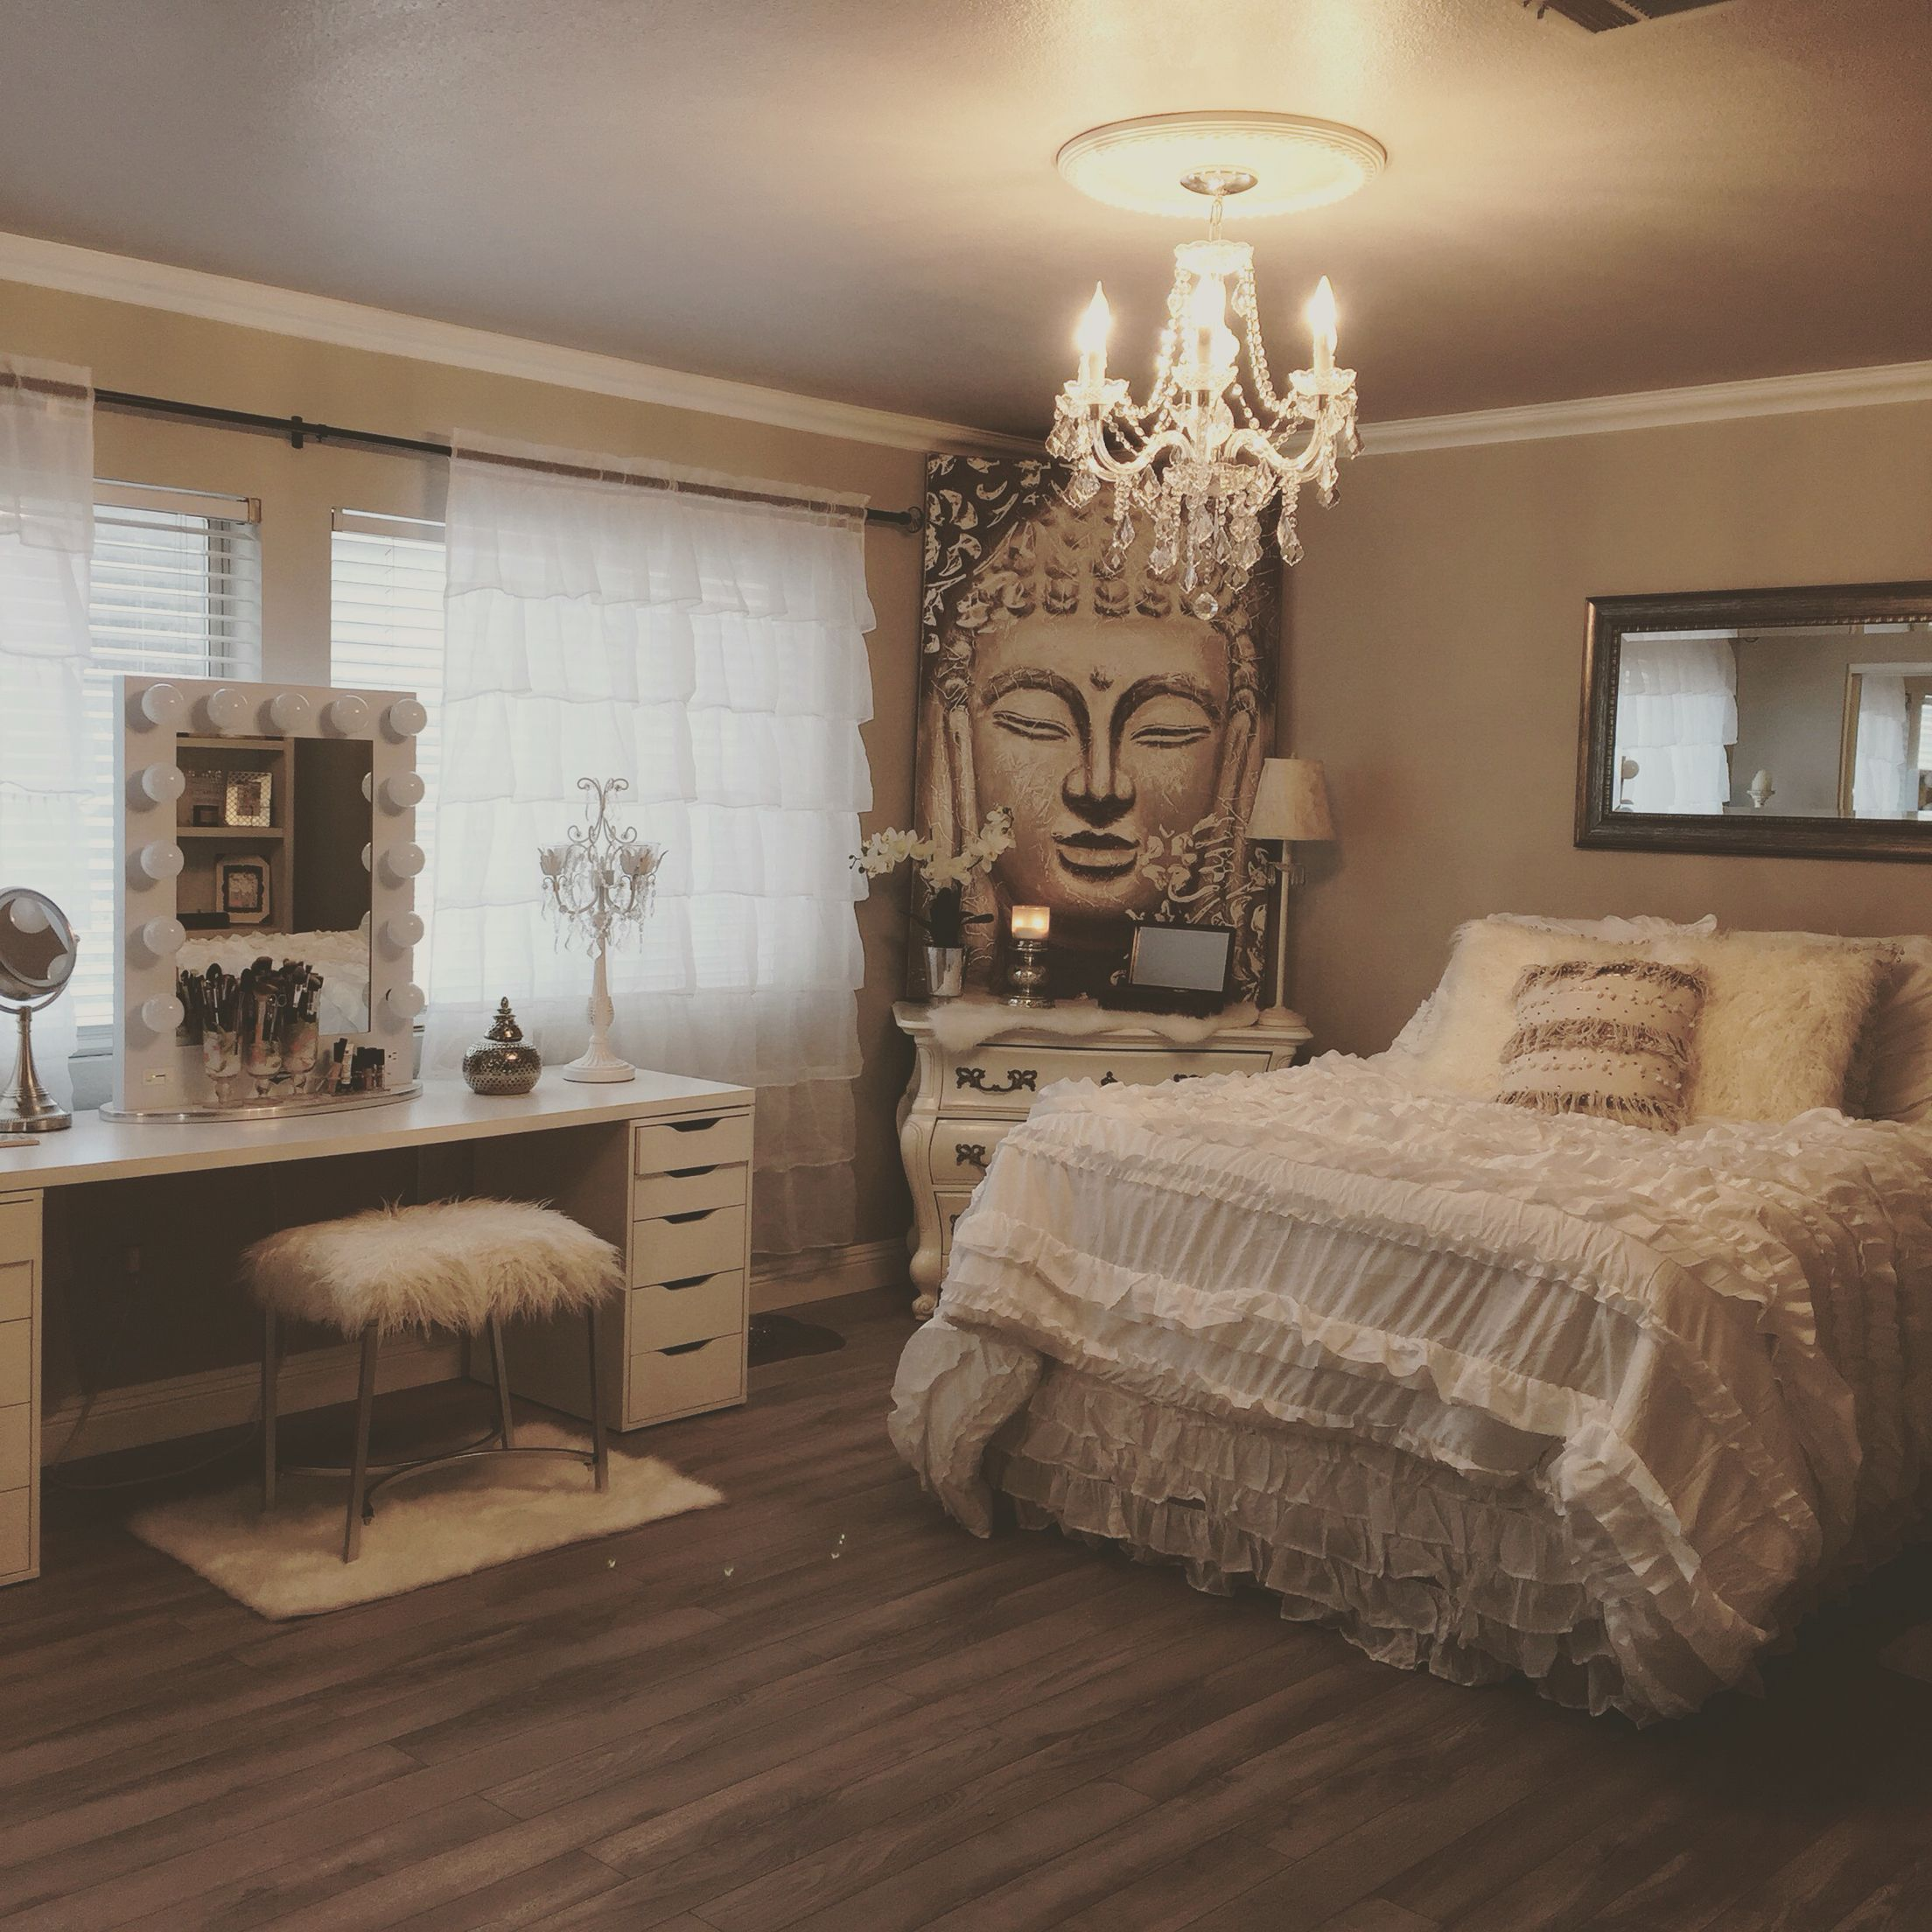 Shabby chic meets zen glam my new bedroom pinterest for Bedroom suite decorating ideas